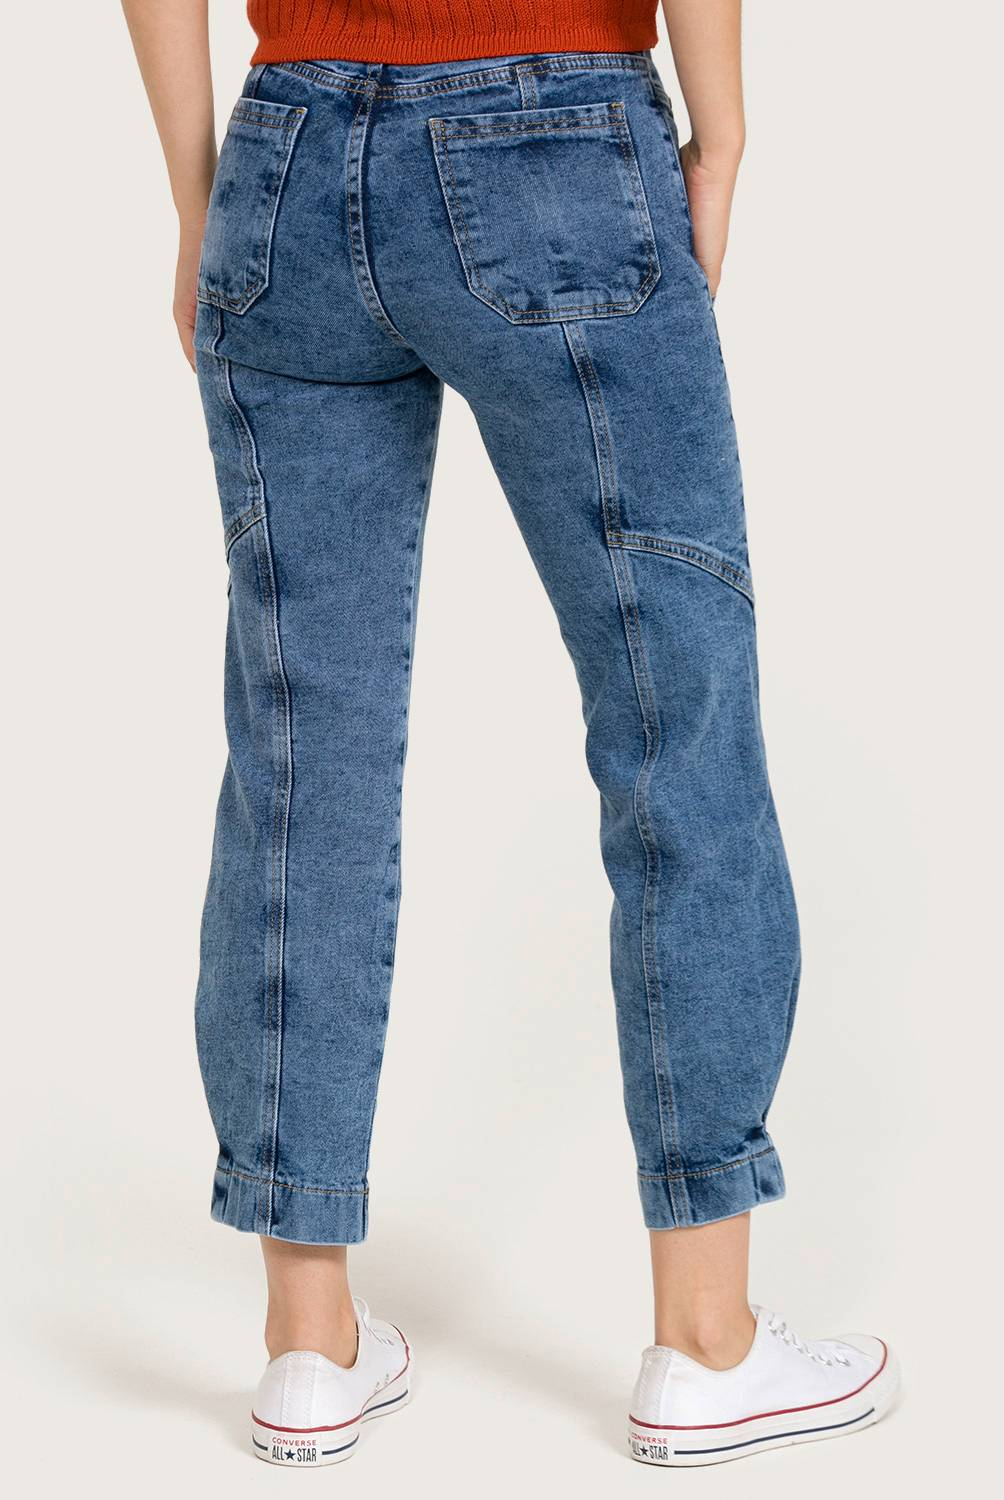 RUPHA - Jeans Mujer